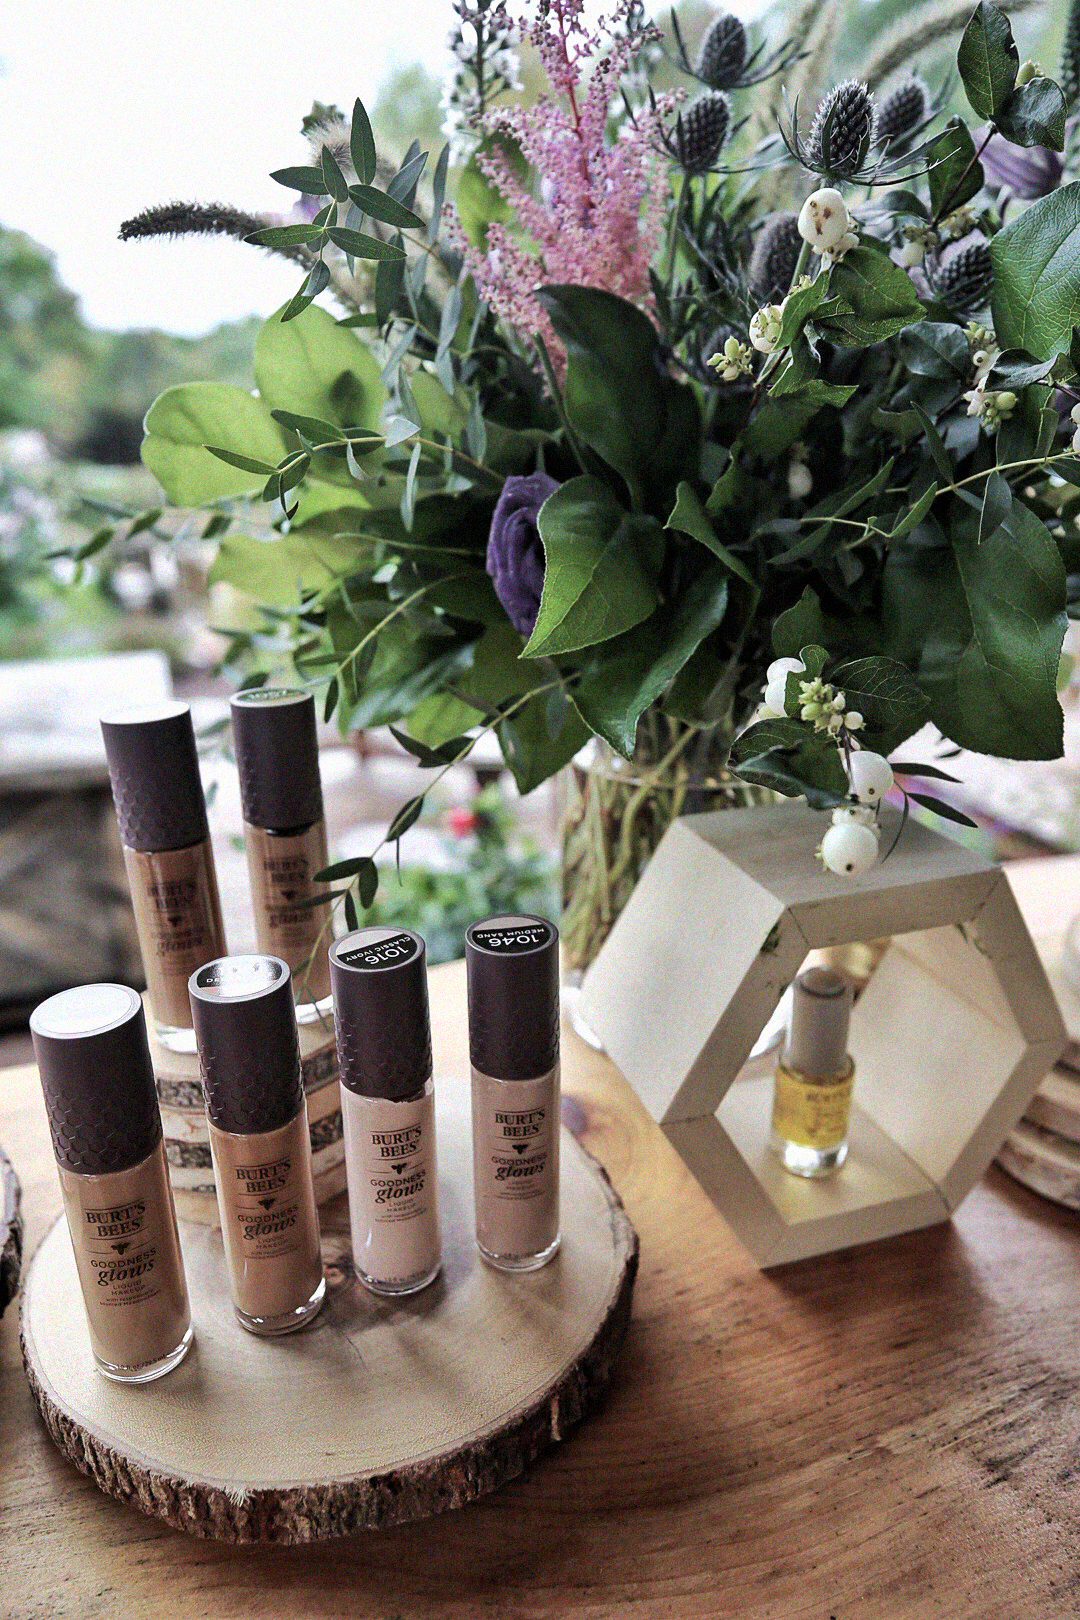 Burt's Bees 2019 launches, new foundation shades, facial oil, natural makeup skincare - photos by Nathalie Martin, woahstyle.com_0543.JPG